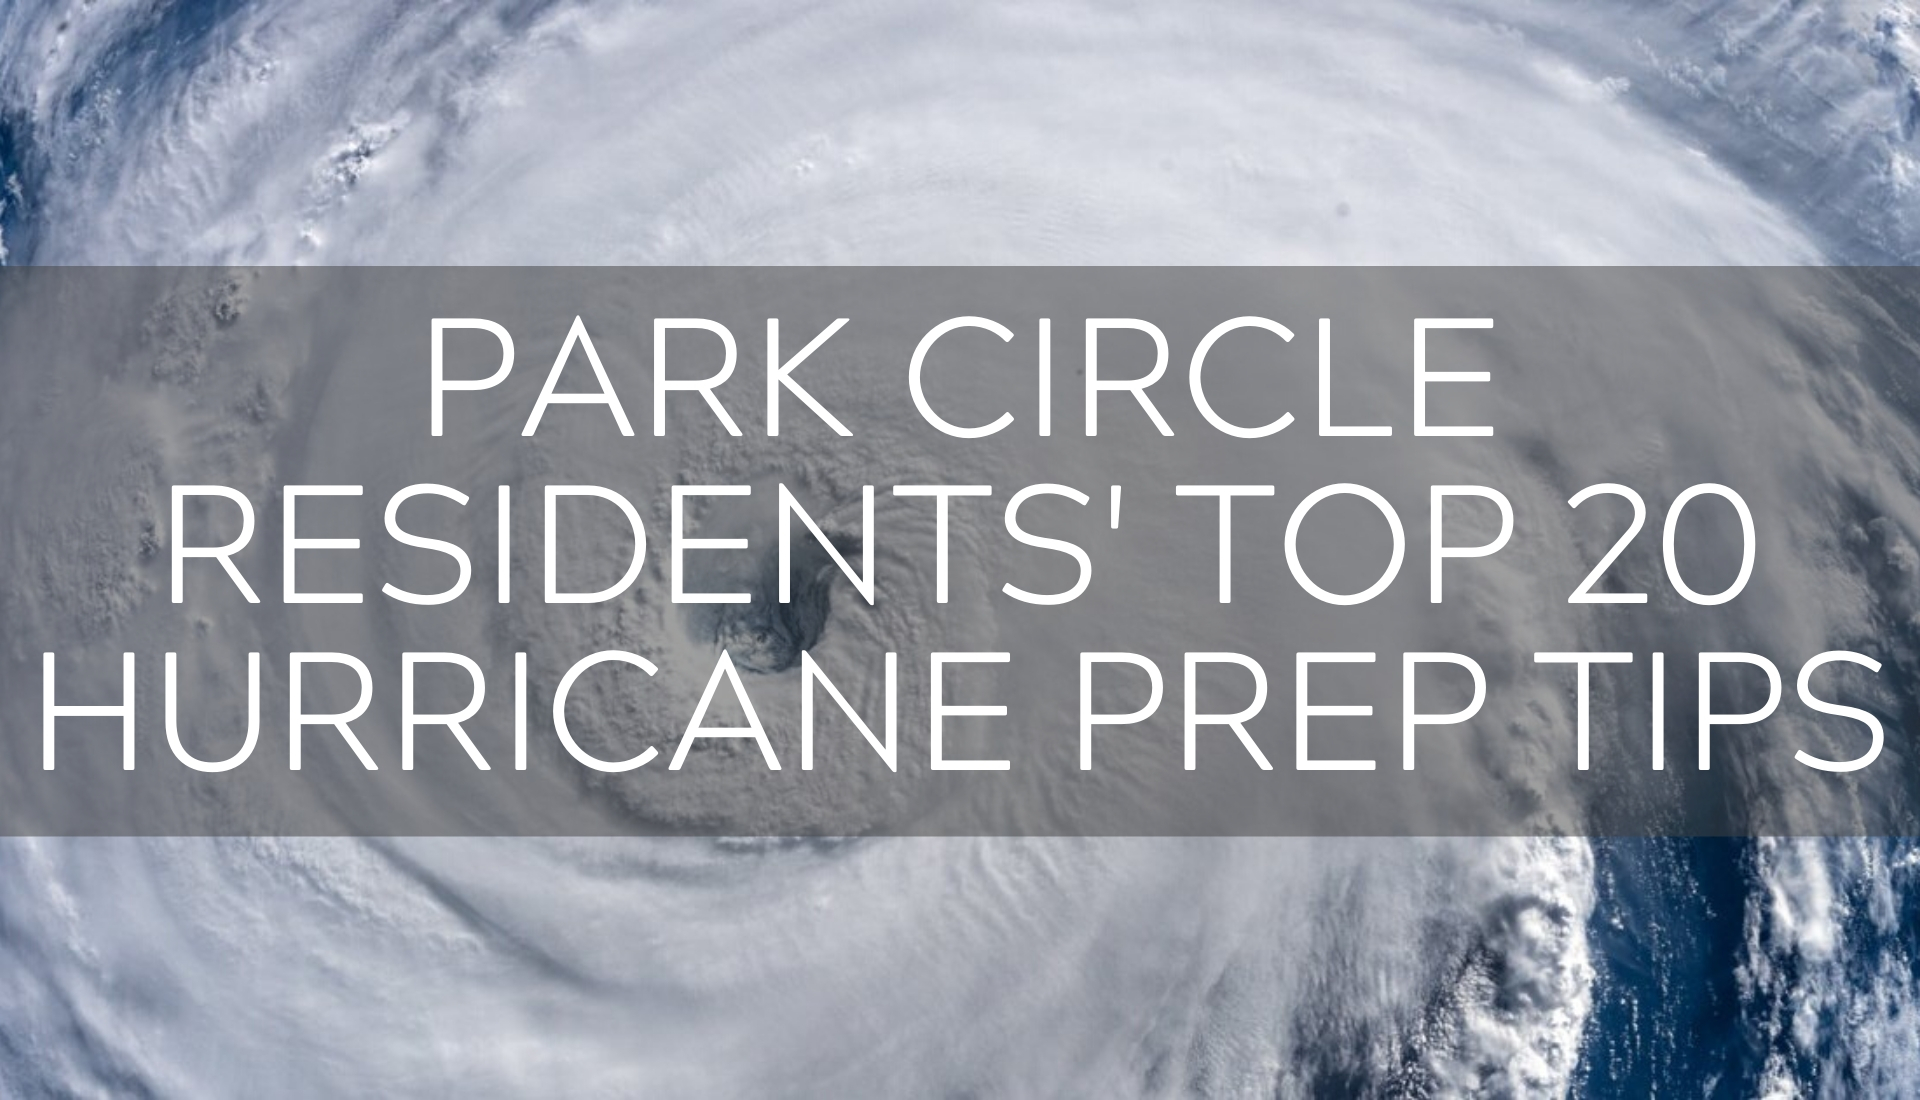 Park Circle Residents' Top 20 Hurricane Prep Tips